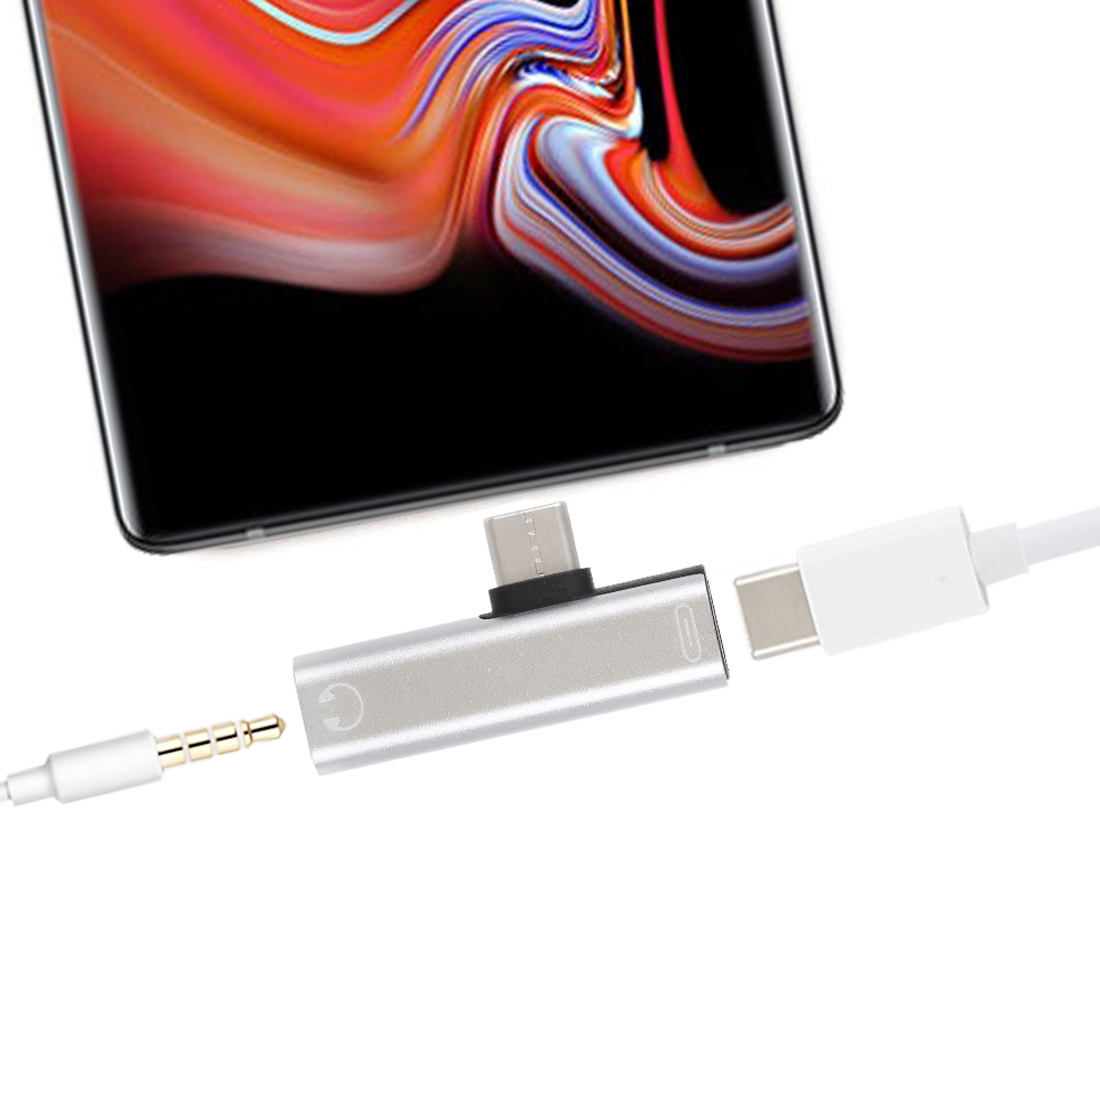 2 in 1 USB-C / Type-C Male to USB-C / Type-C Female 3.5mm Jack Charging Listening Adapter (Silver)